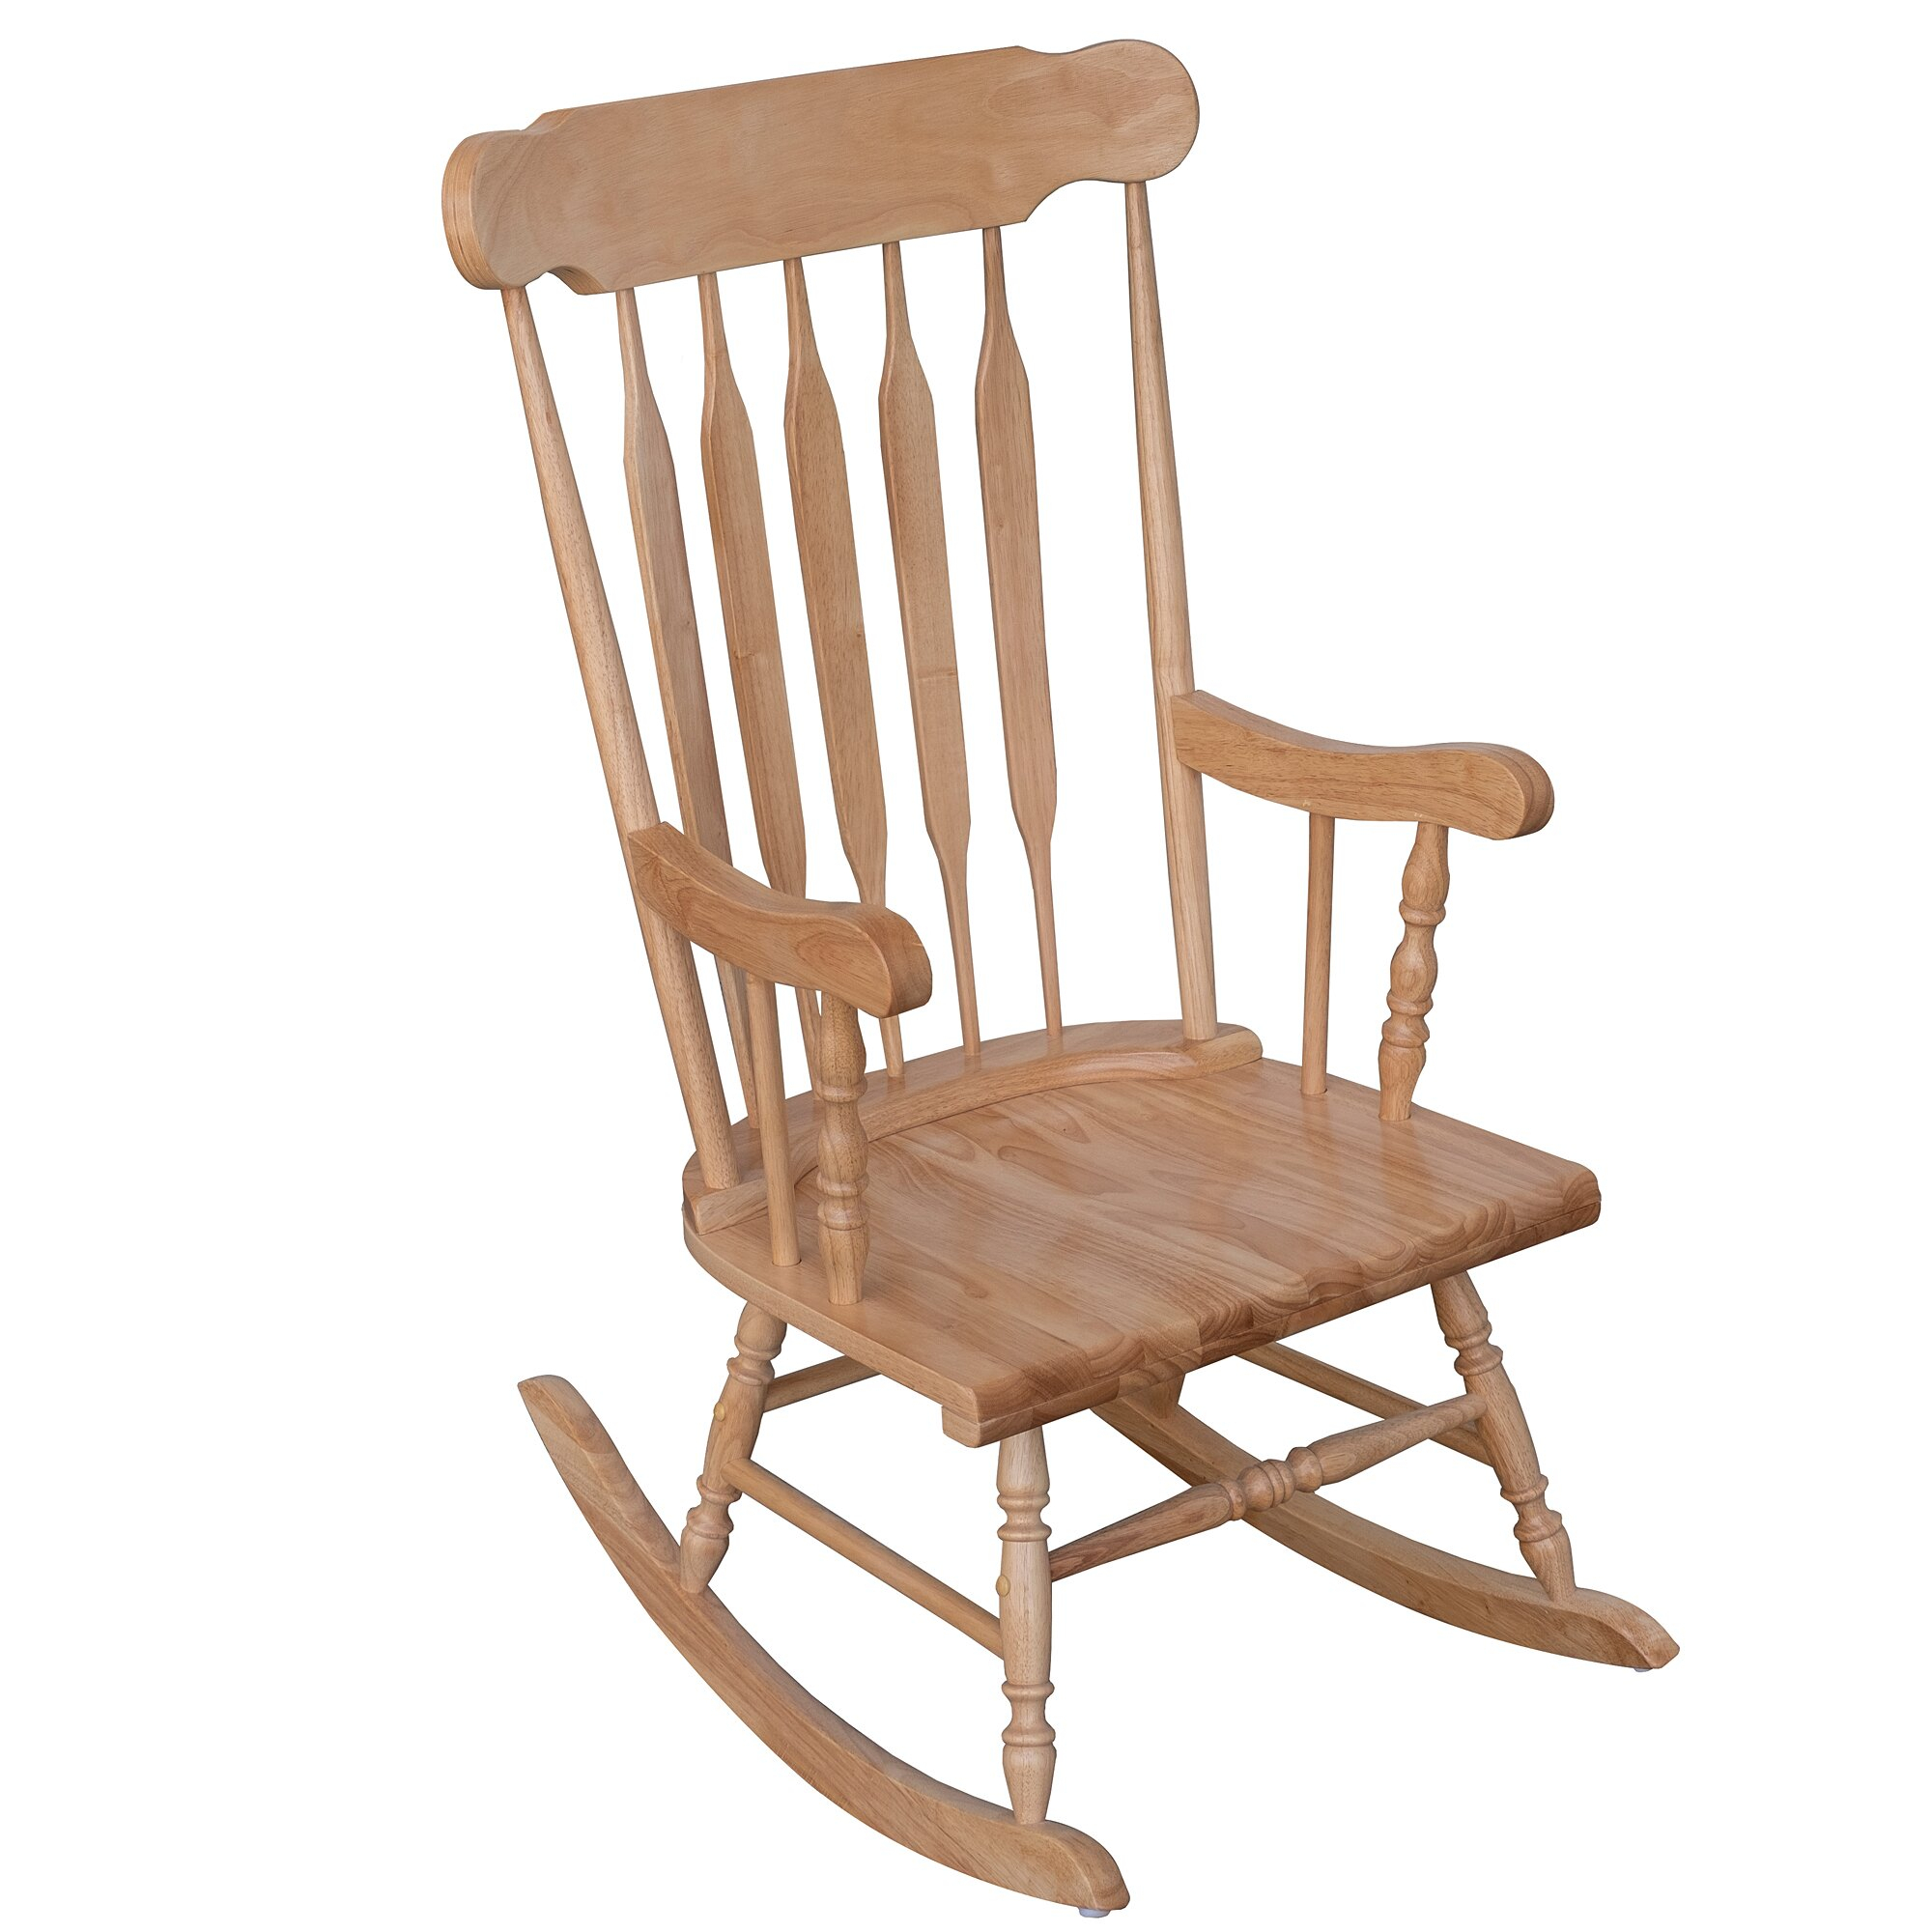 Homcom Traditional Slat Wood Rocking Chair Indoor Porch Furniture For Patio  Living Room – Natural Wood Color Throughout Traditional Wooden Porch Rocking Chairs (#9 of 20)